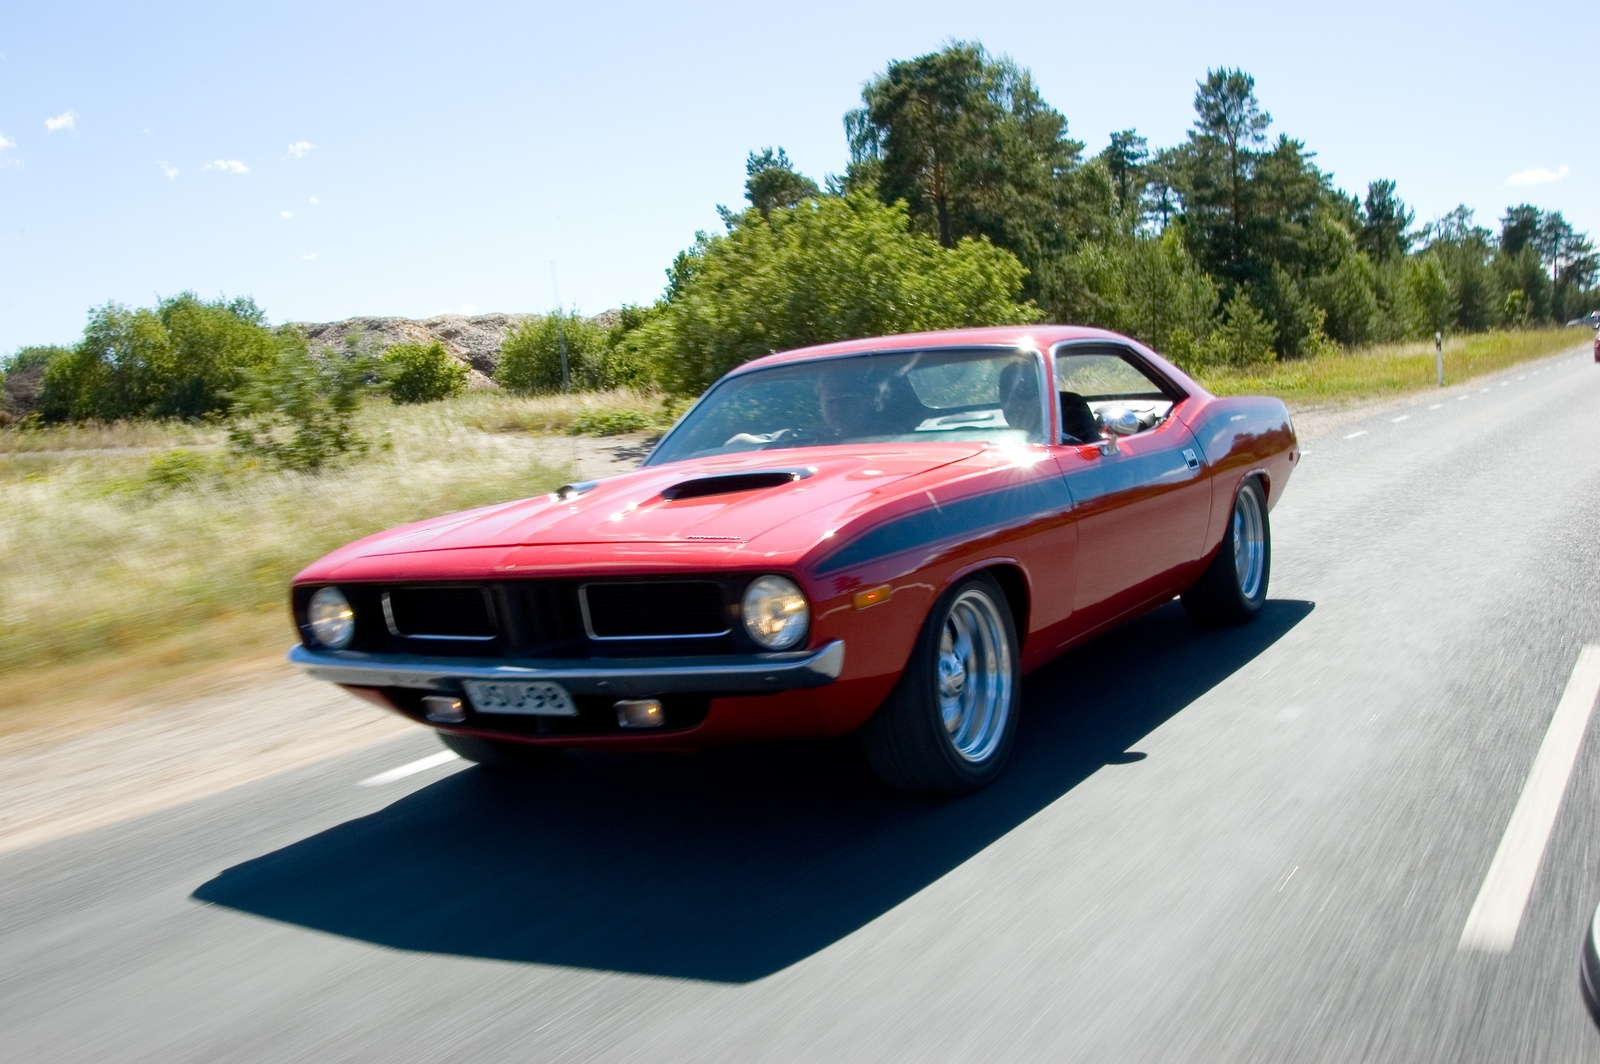 hight resolution of plymouth cuda 1972 4 plymouth cuda 1972 4